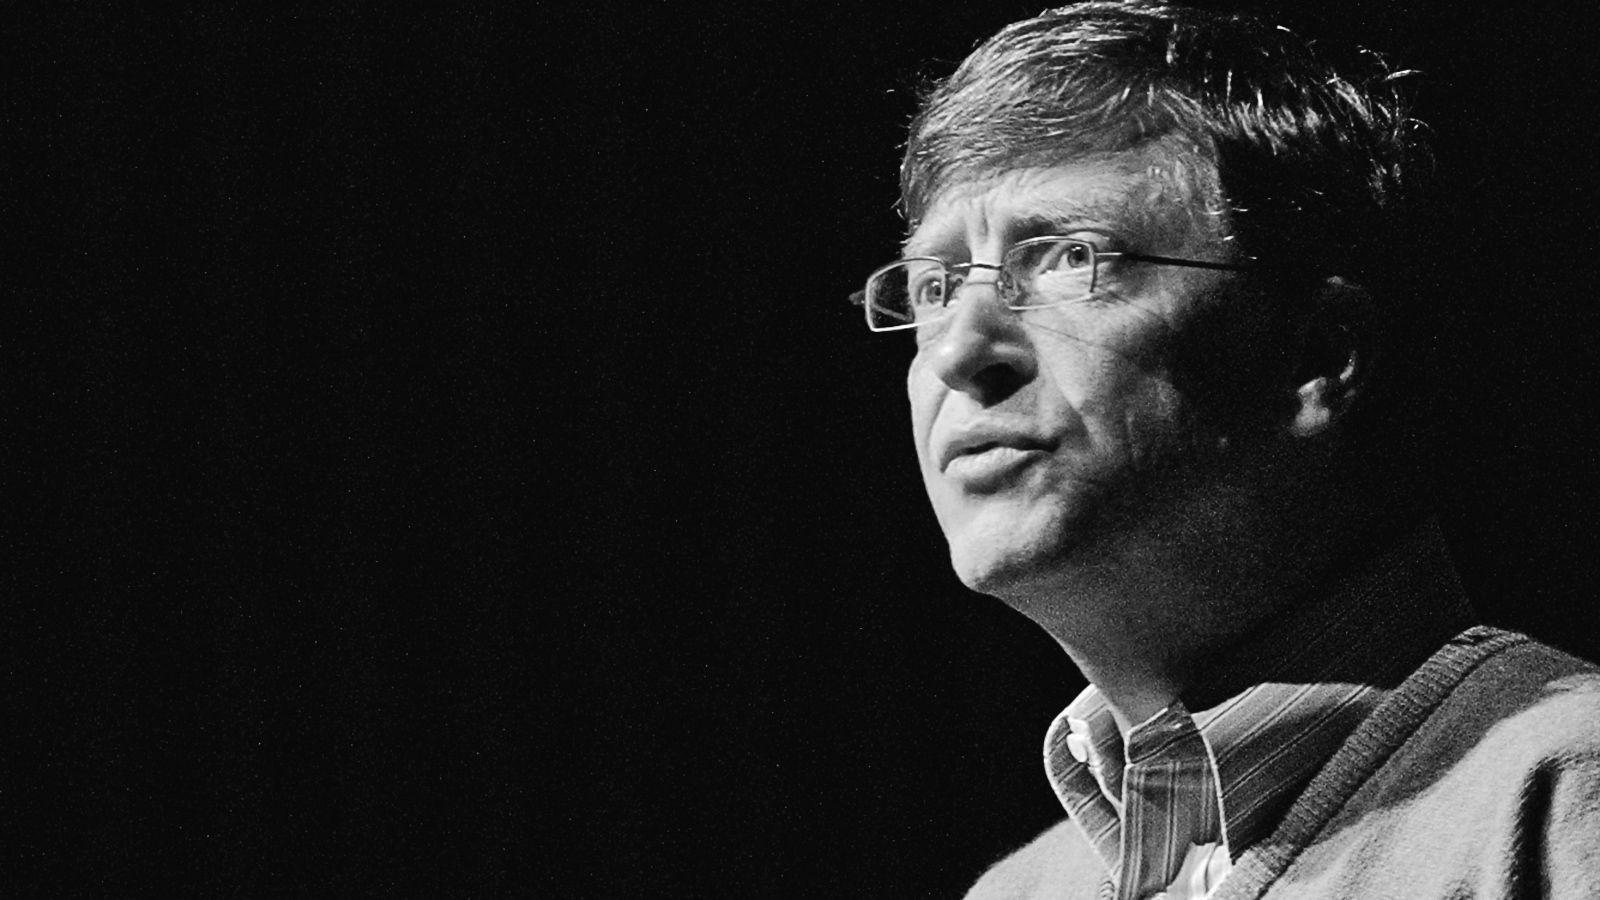 Philanthropist and inventor Bill Gates paid $80 million to kick start a a smart city.